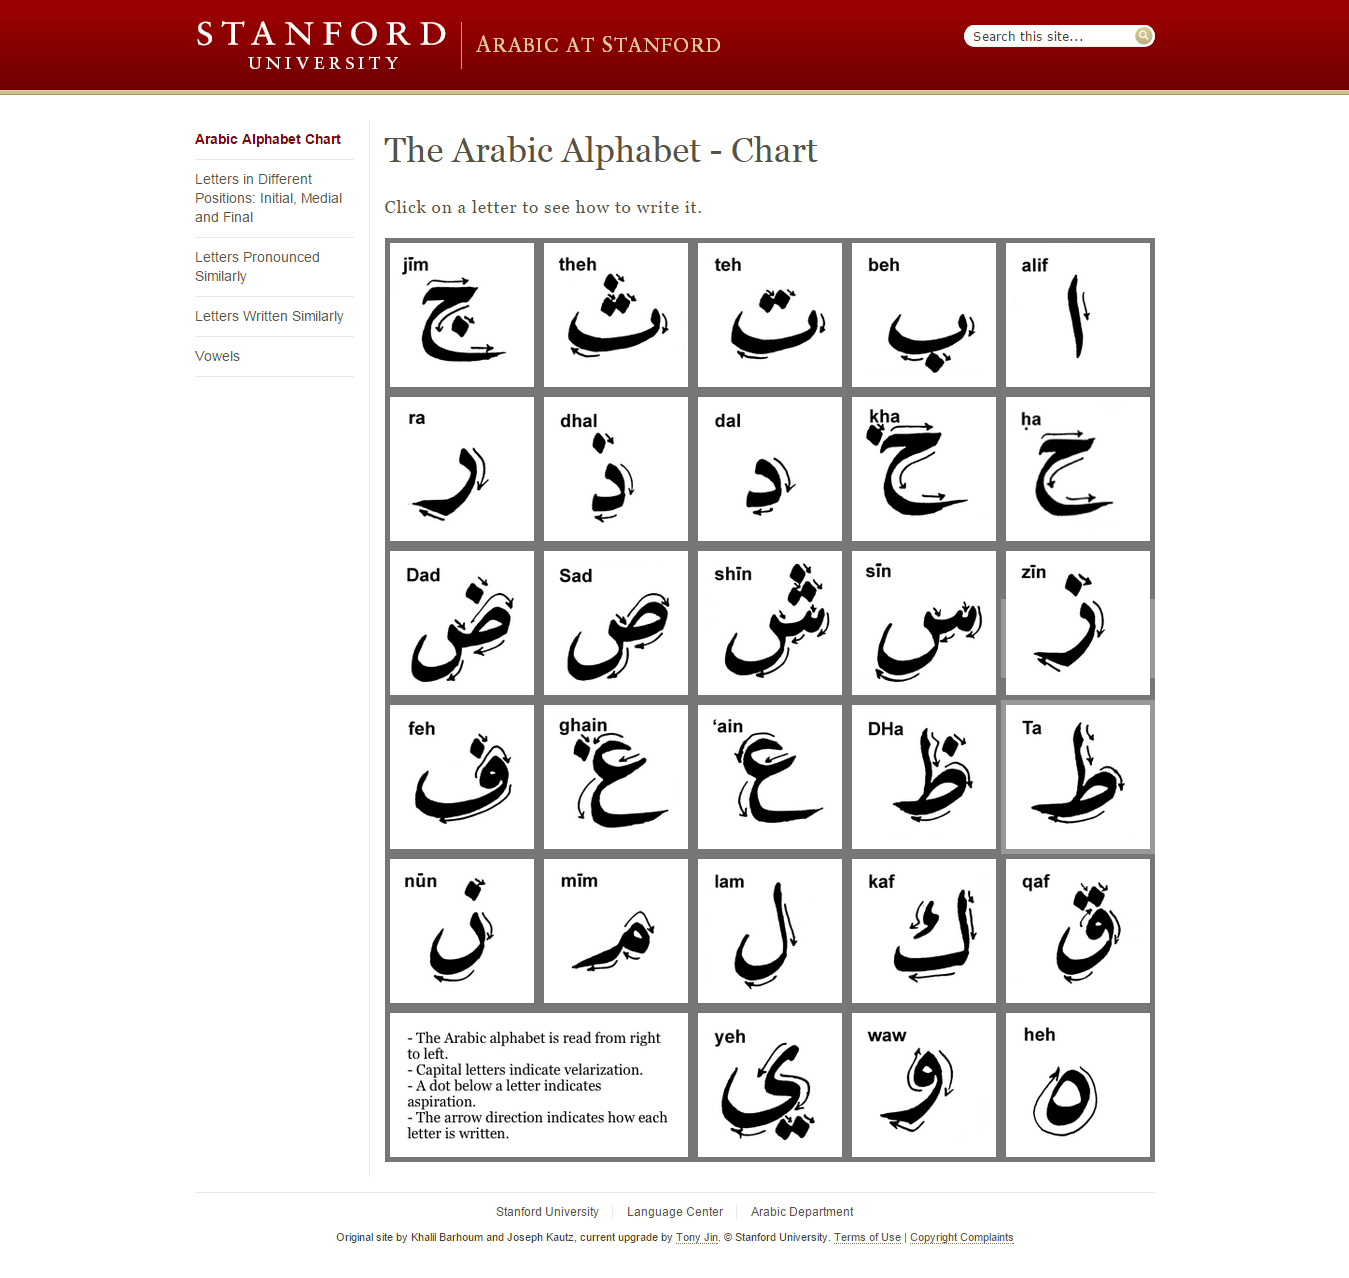 How to Write Arabic Letters